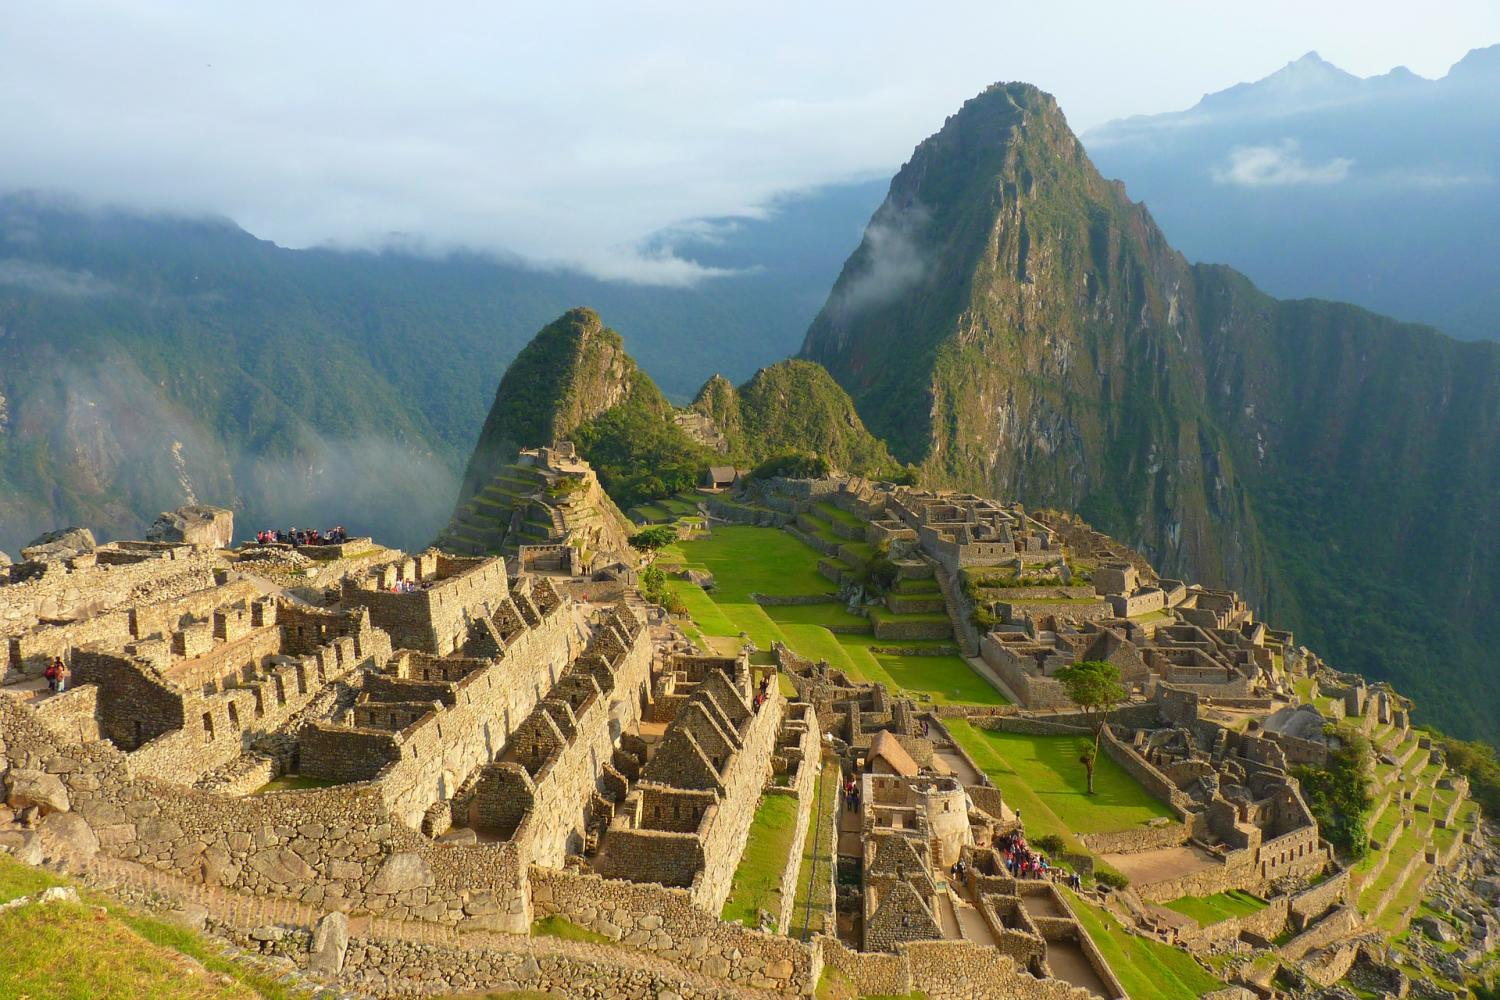 8-Day Machu Picchu & Lake Titicaca Excursion From Lima